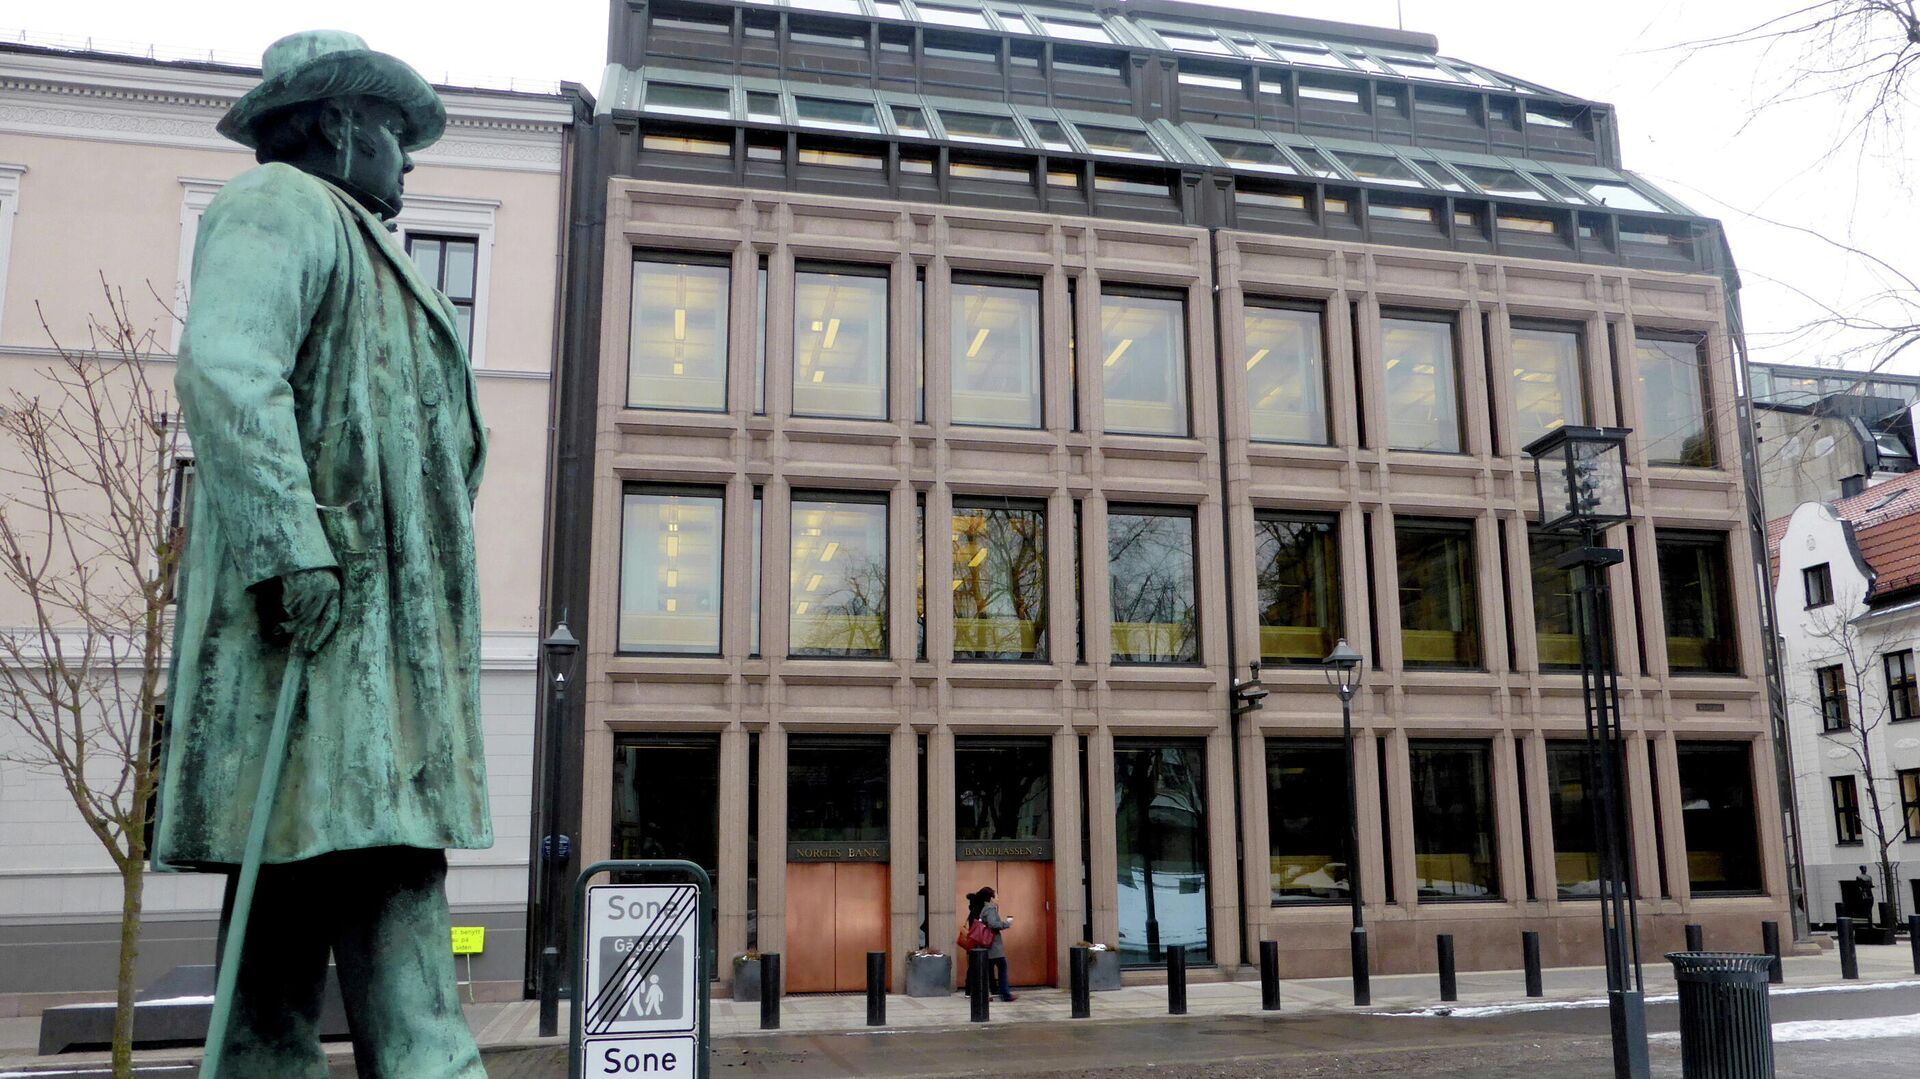 A general view of the Norwegian central bank, where Norway's sovereign wealth fund is situated, in Oslo, Norway, March 6, 2018 - Sputnik International, 1920, 24.09.2021